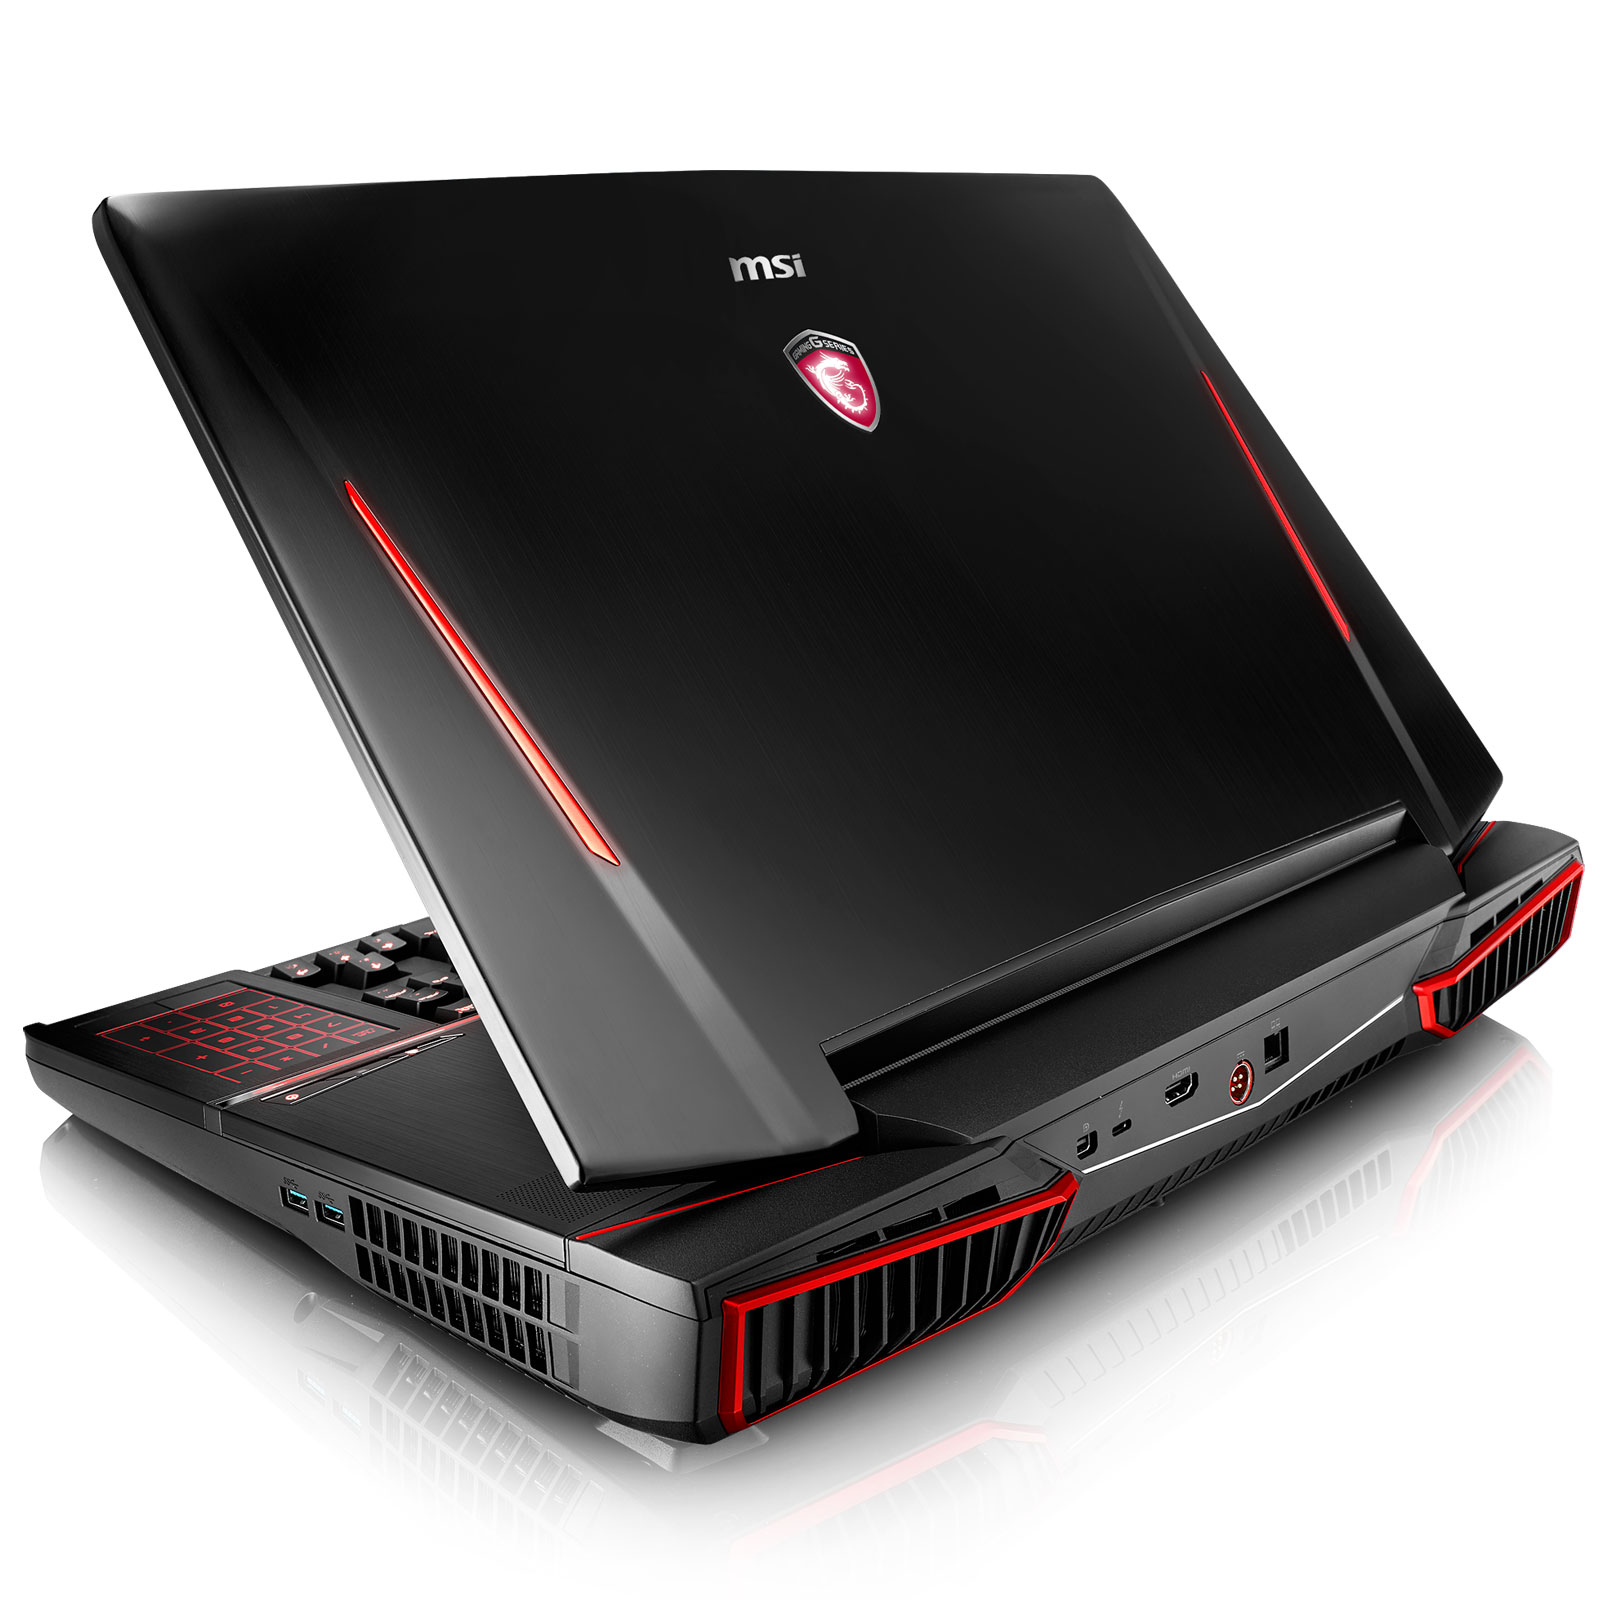 msi gt83vr 6rf 037fr titan sli pc portable msi sur ldlc. Black Bedroom Furniture Sets. Home Design Ideas